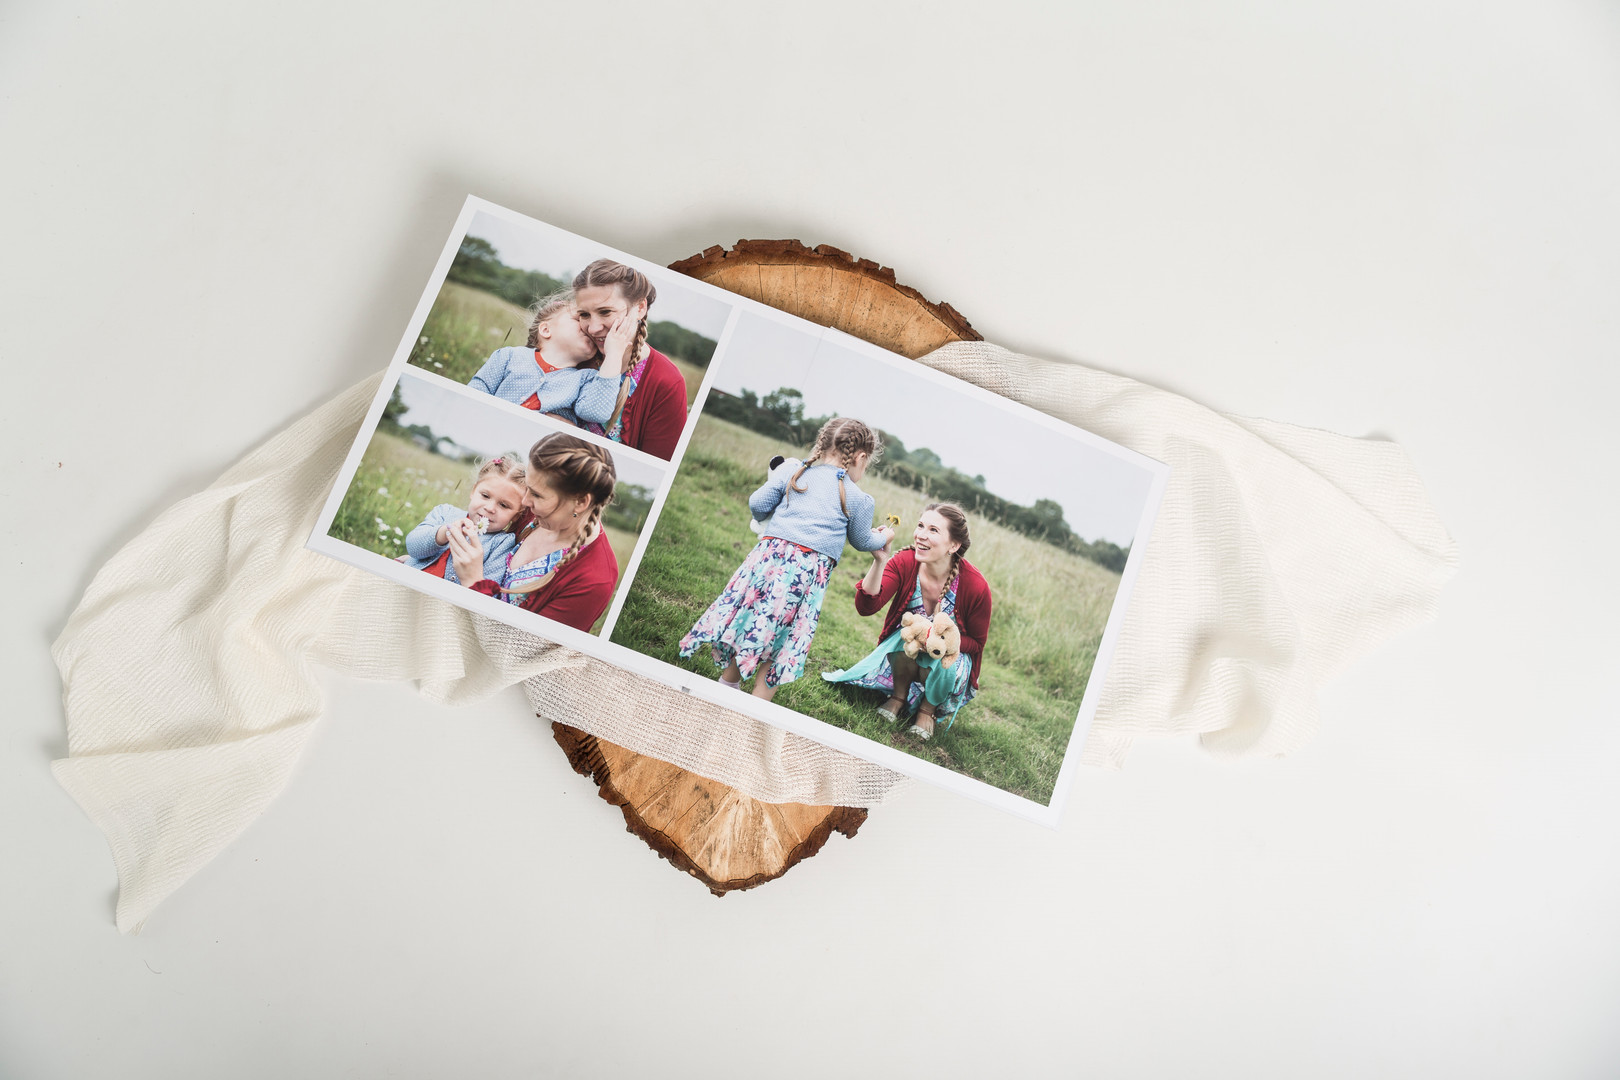 beautiful photo album for family and baby photo shoots